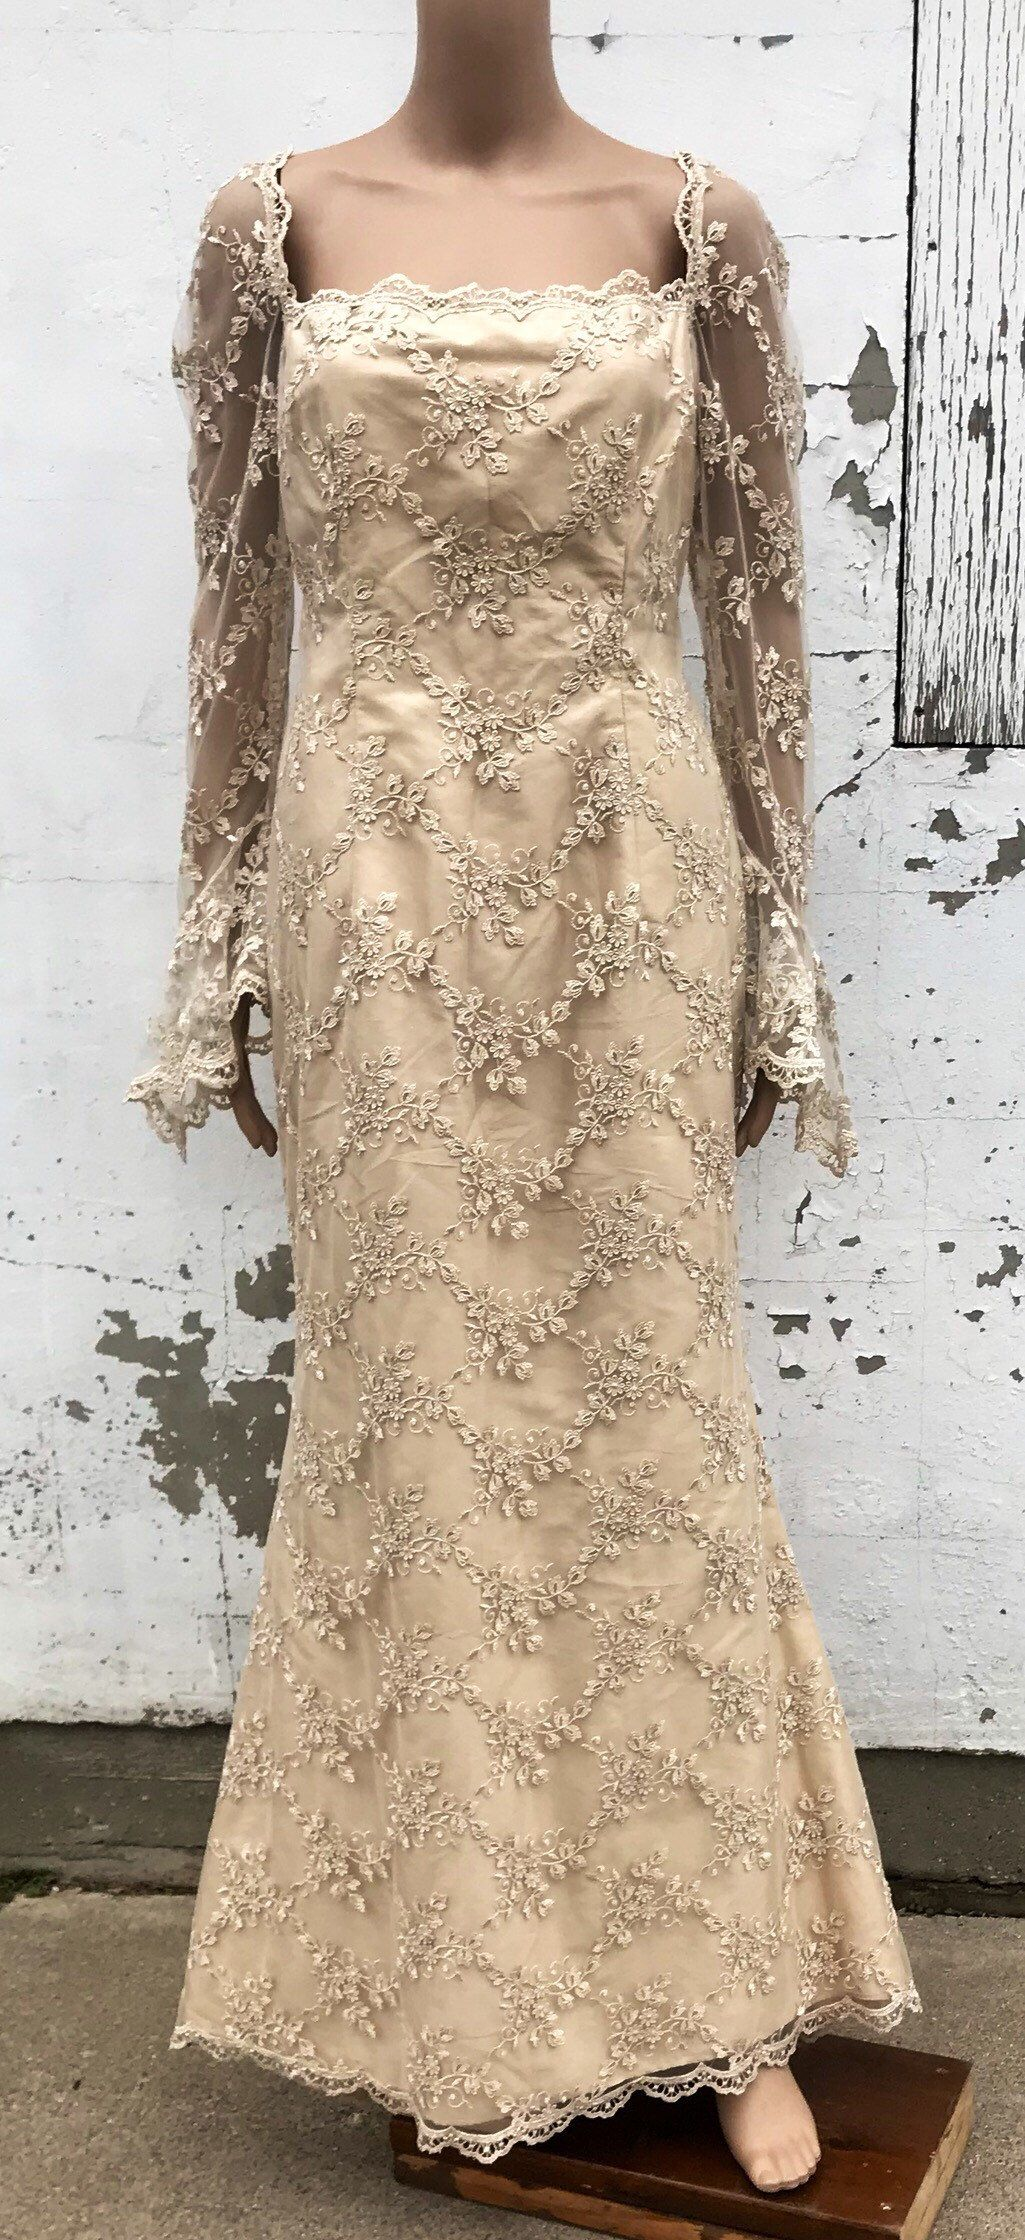 1950s style wedding dresses  Vintage Dress  Nude Ivory Lace  s Bridal Gown  Retro Wedding